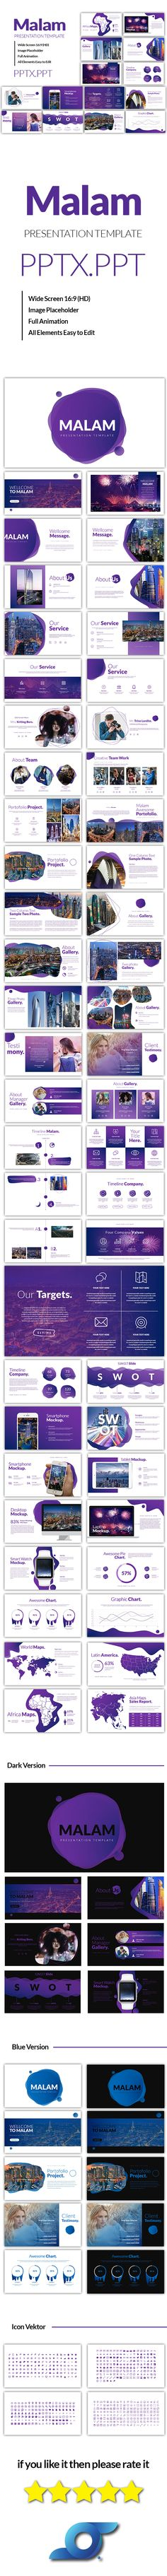 Malam Modren Powerpoint Template - Abstract PowerPoint Templates